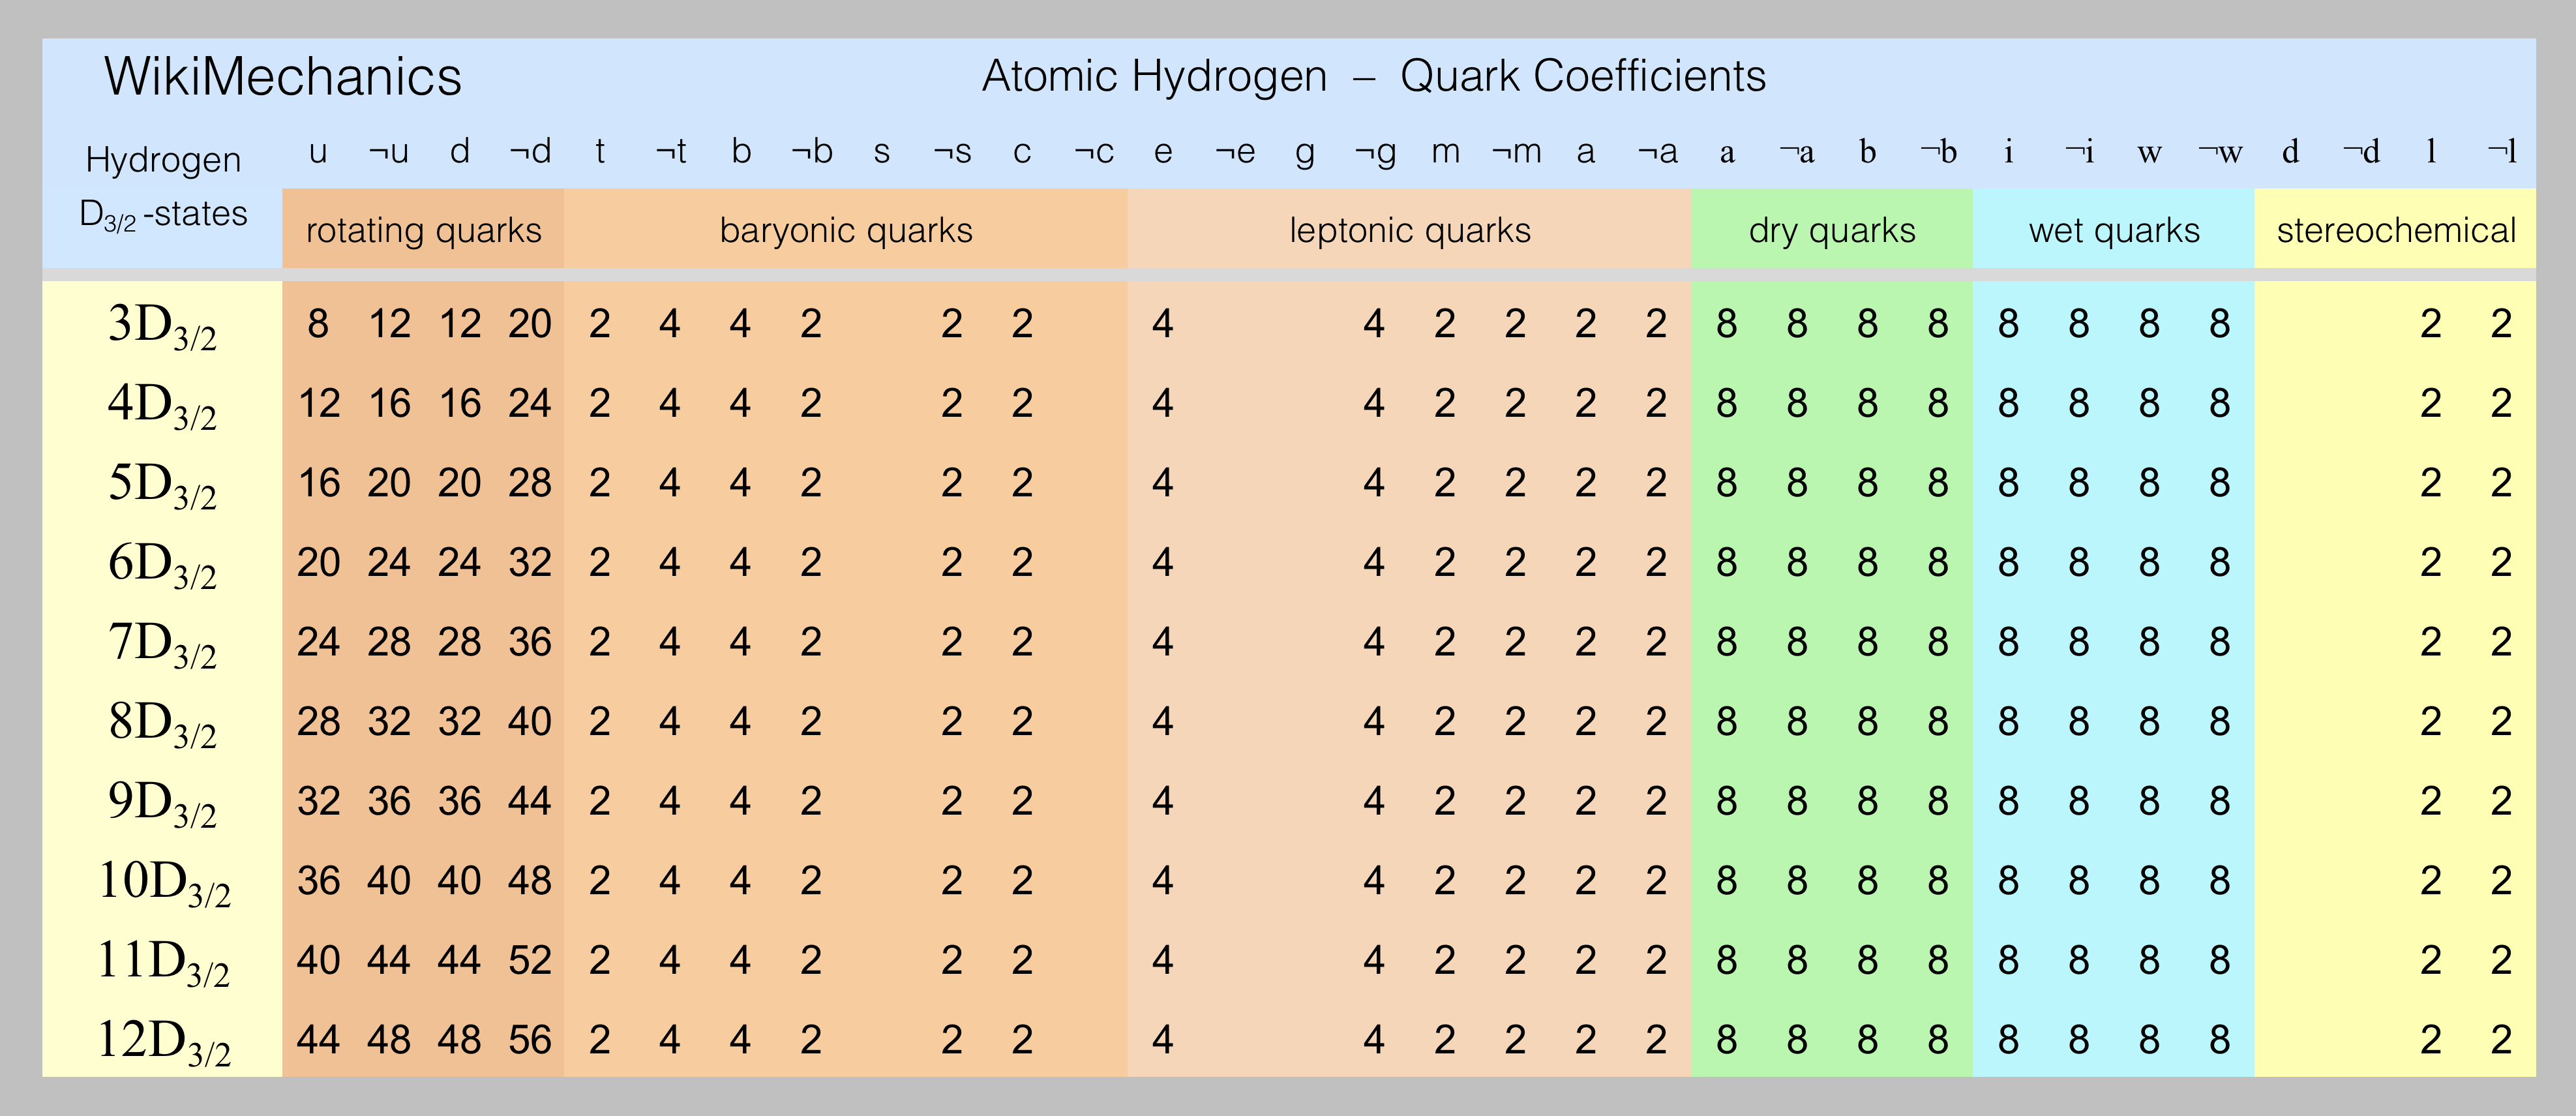 hd3-2quarks.png